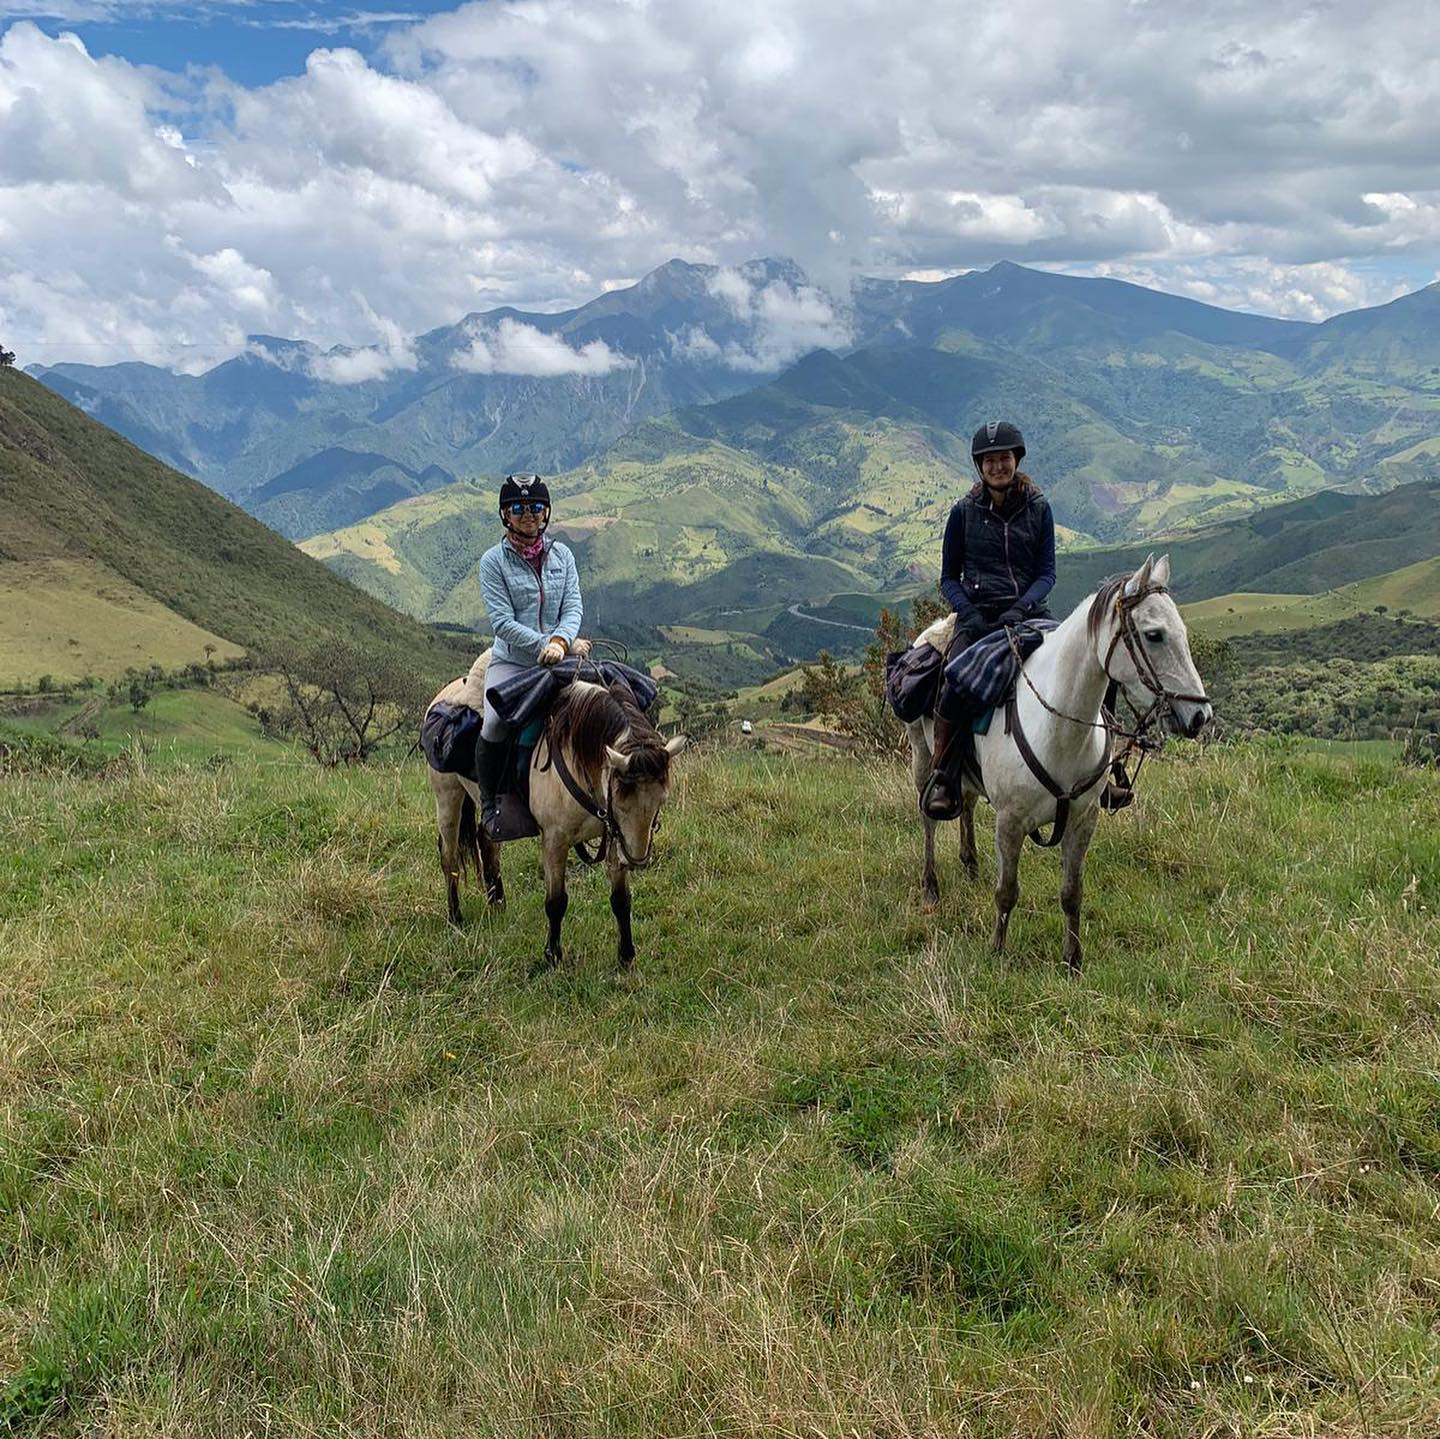 Avenue of the Volcanoes Trail - Horse Riding Holidays in Ecuador